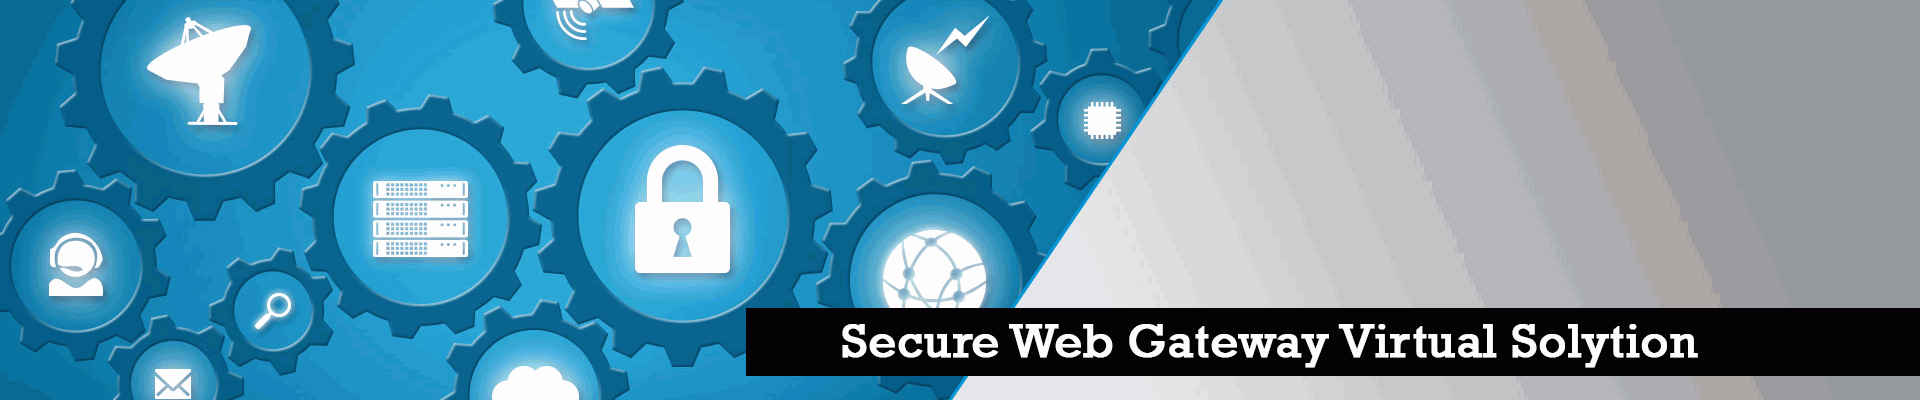 SECURE WEB GATEWAY VIRTUAL SOLUTION - Codec Networks